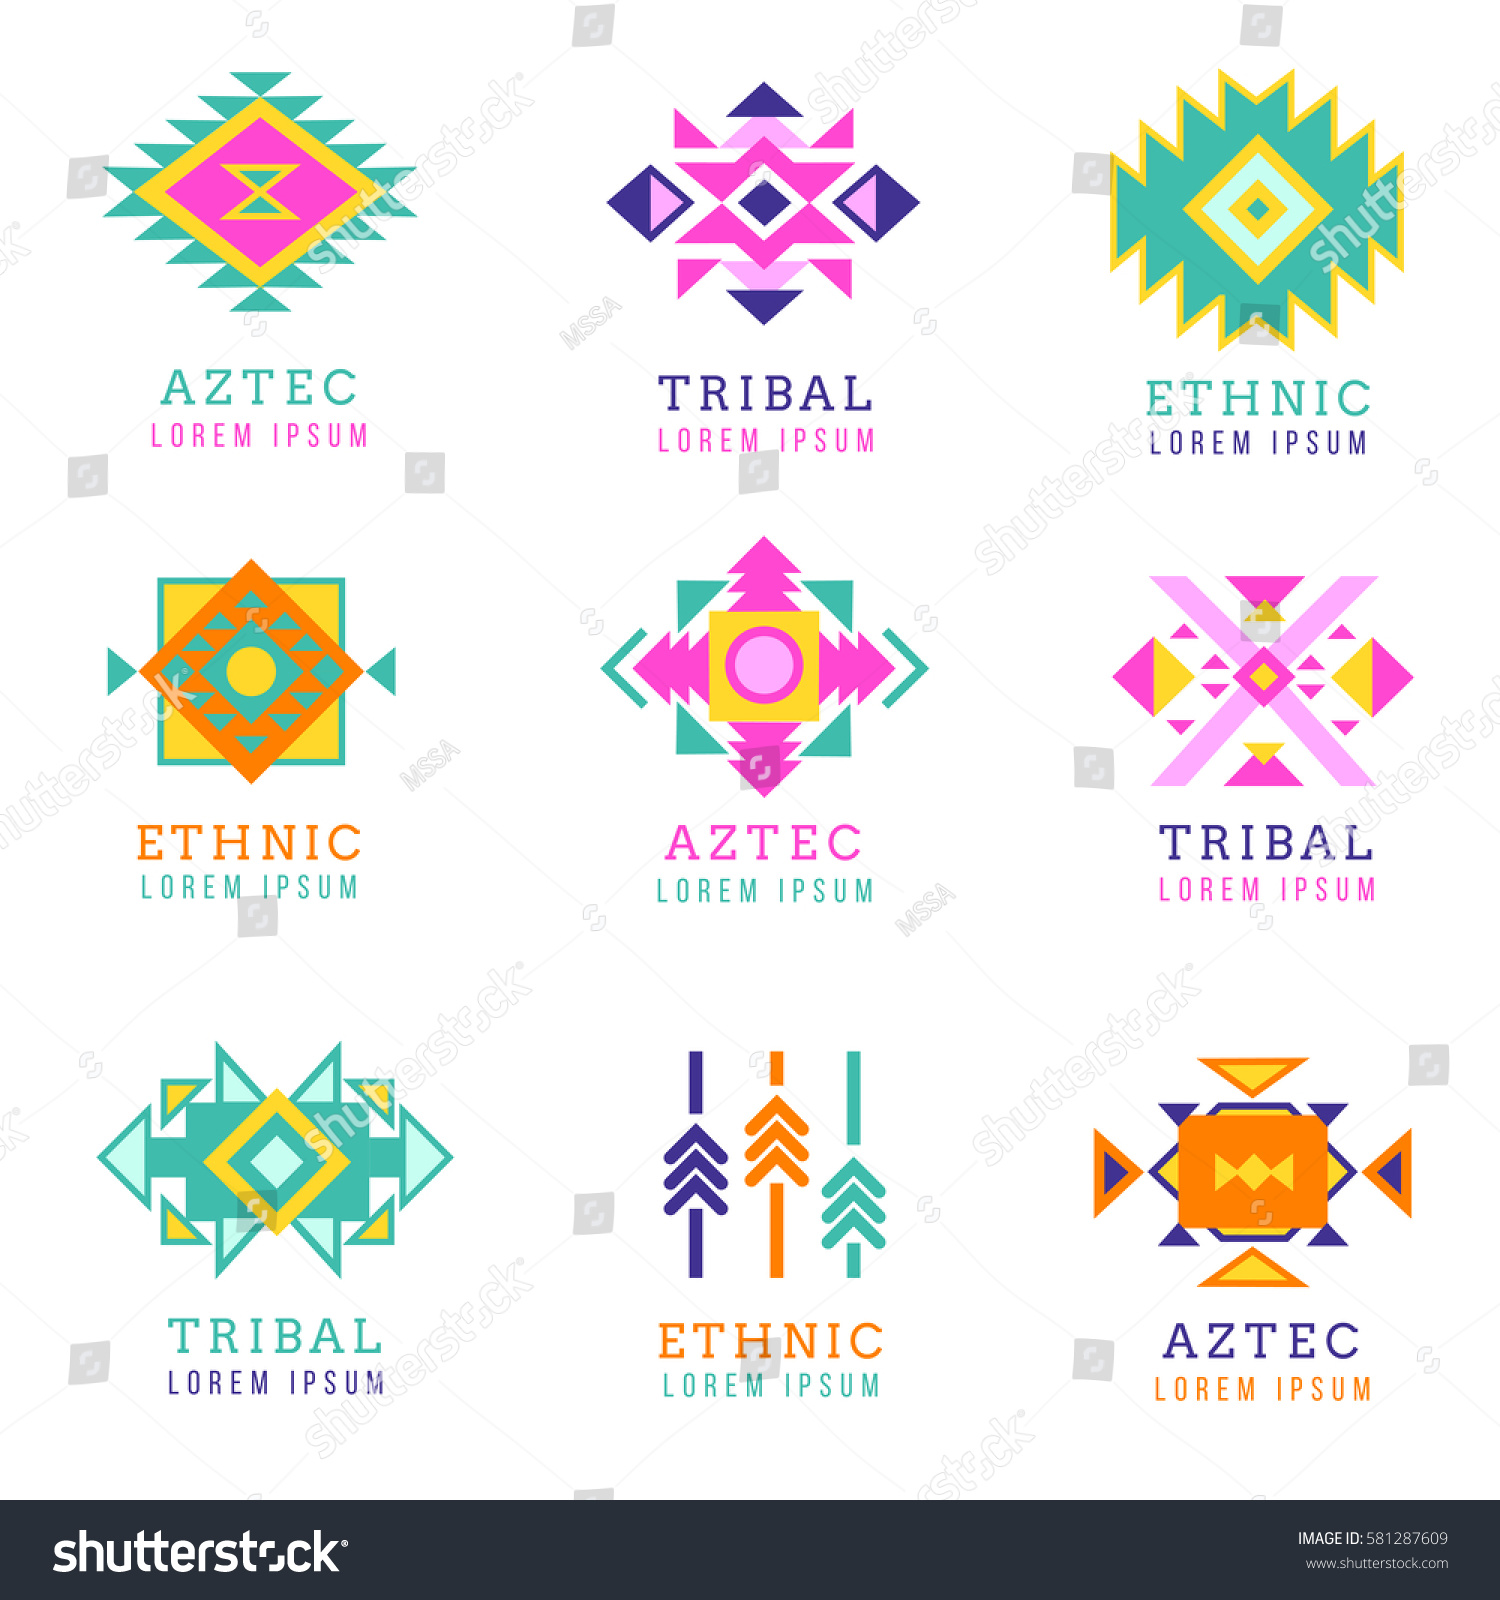 Aztec apache motif style logo set stock vector 581287609 shutterstock aztec or apache motif style logo set native mexican labels isolated on white background buycottarizona Images